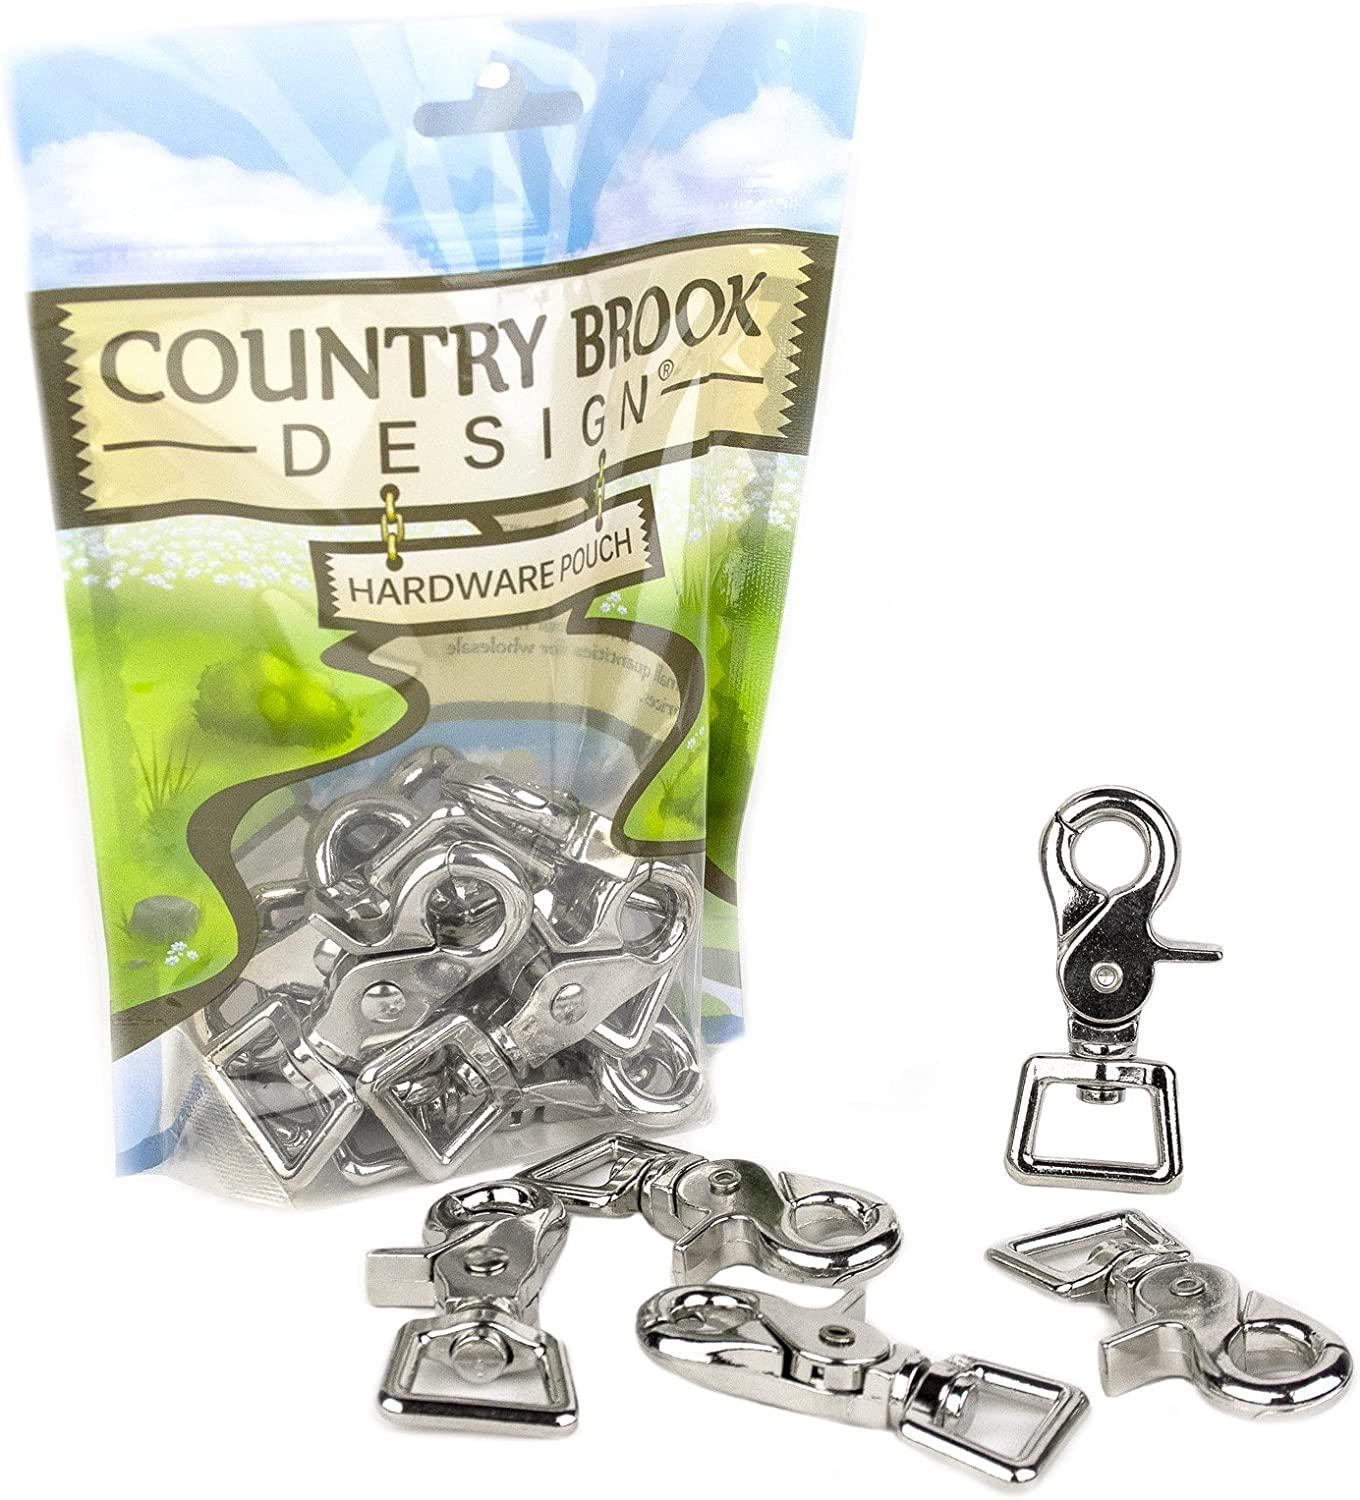 25 Country Brook Design 3//4 Inch Trigger Swivel Snap Hooks